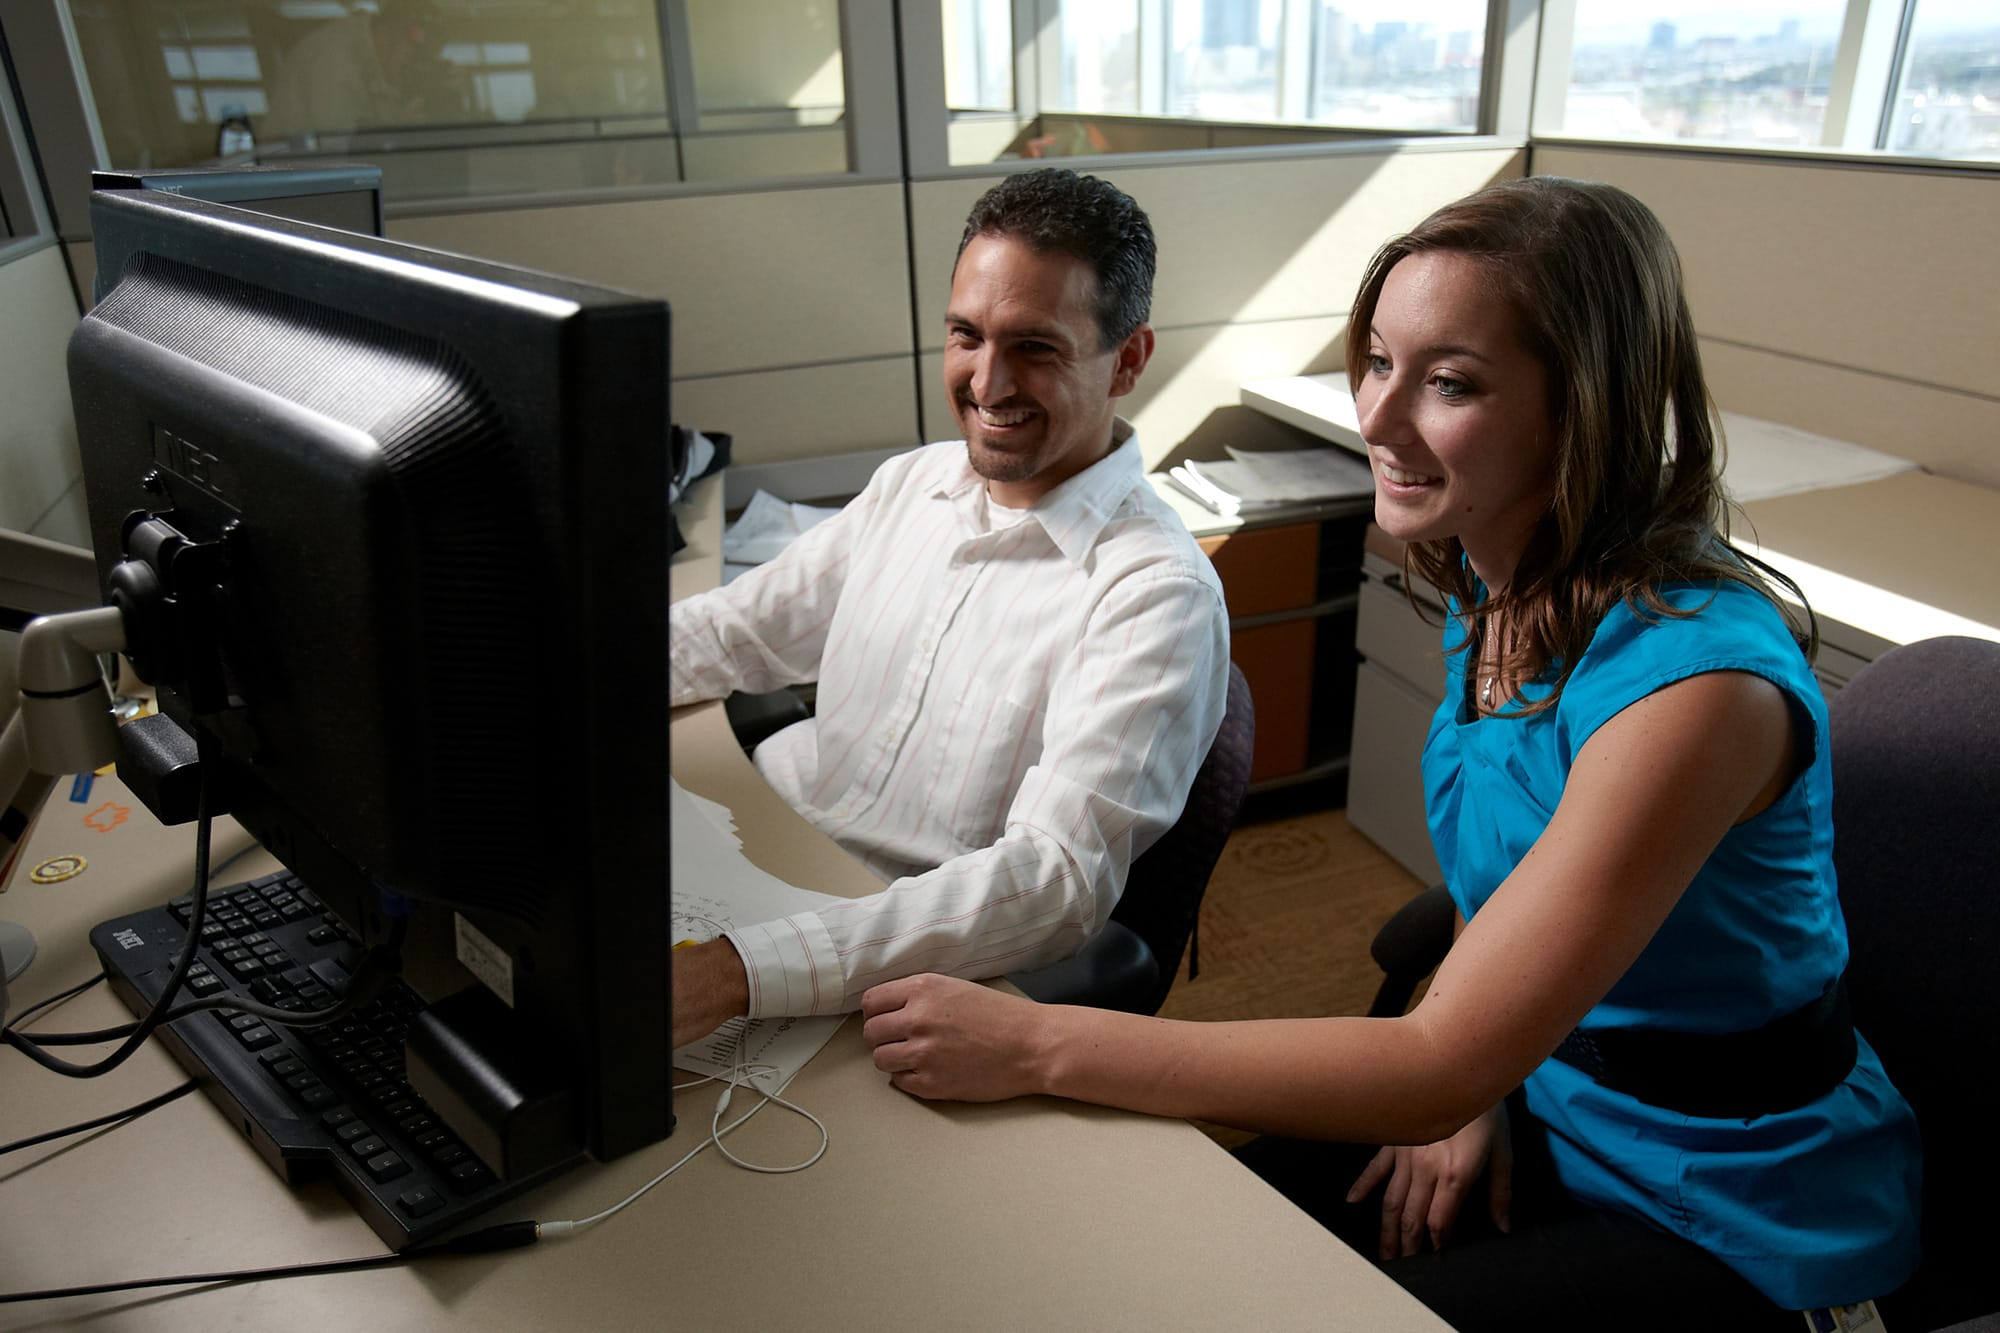 Two people working at computers